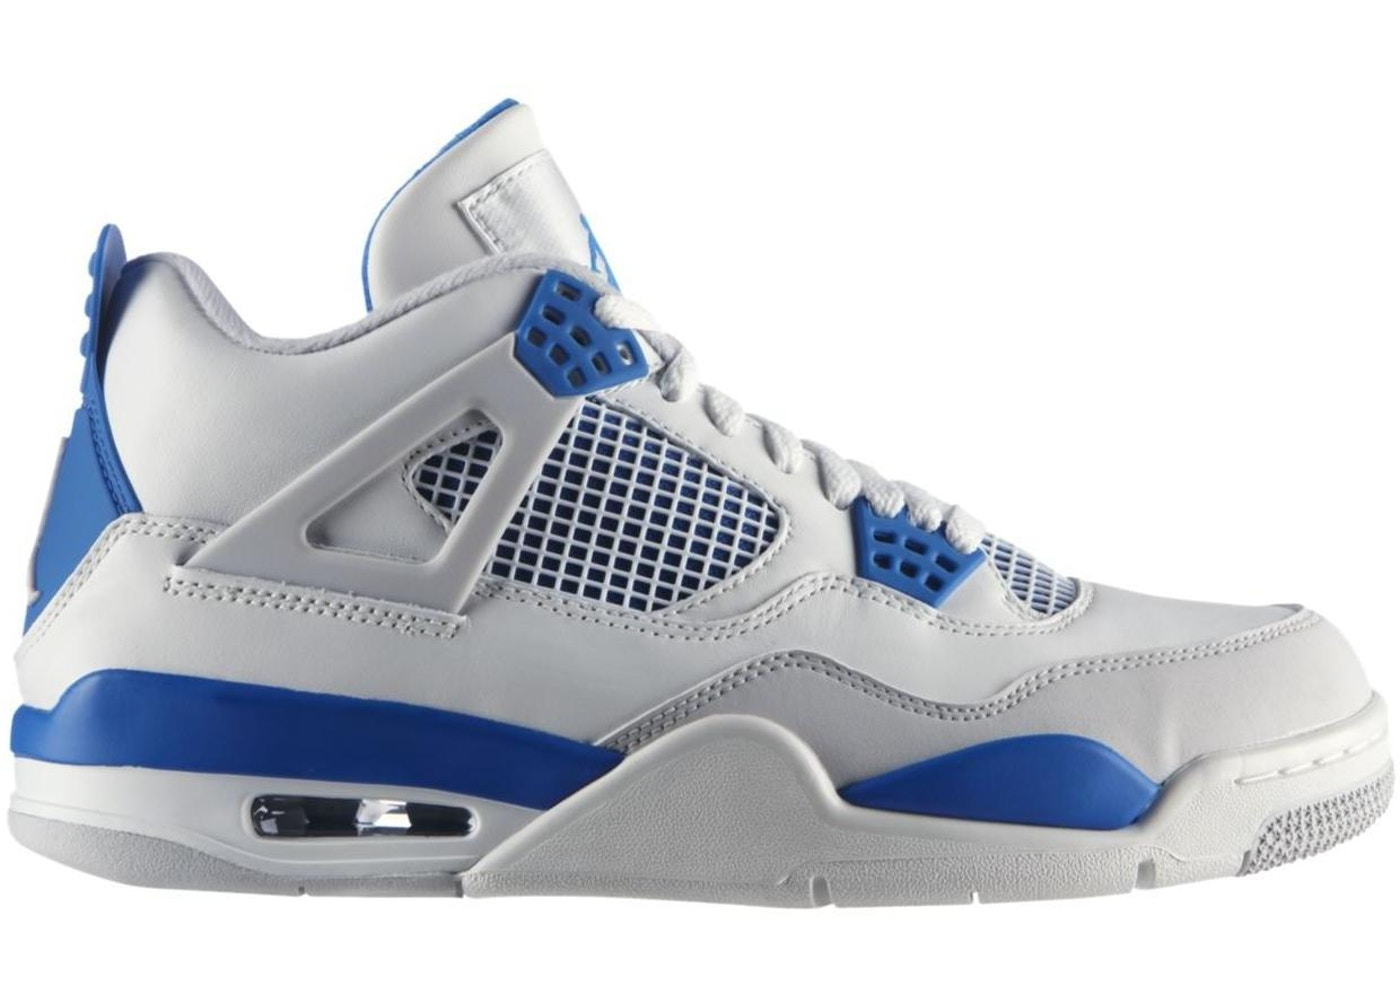 Jordan 4 Retro Military Blue (2012) - 308497-105 a44151cb8